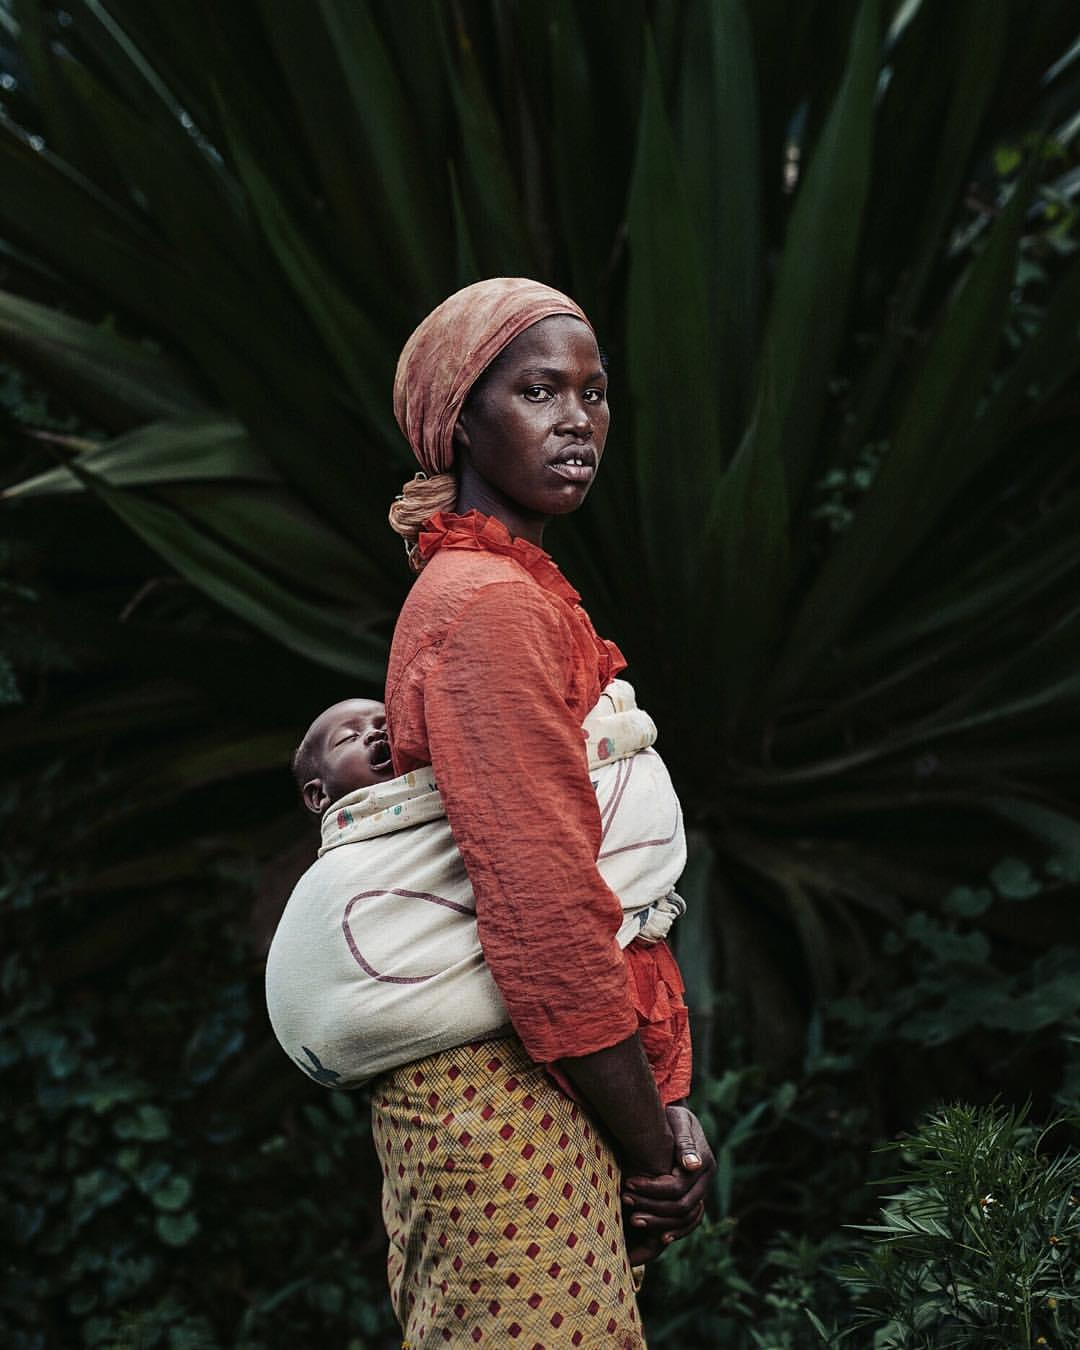 A woman carries her baby in Rwanda.